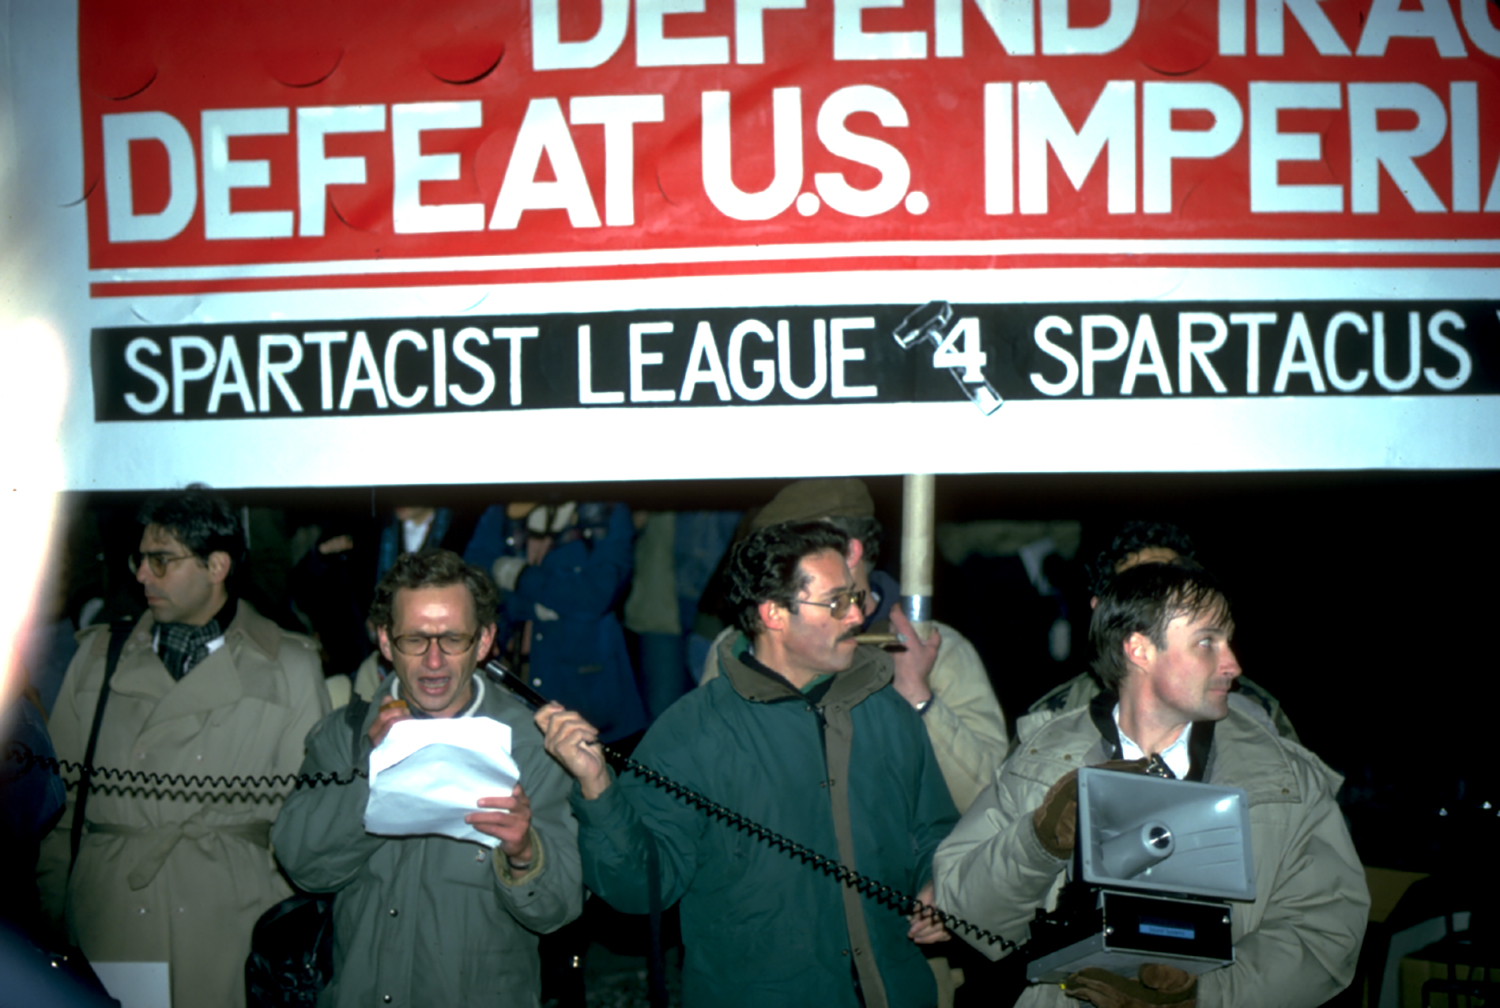 Gulf War Protesters at Times Square, 1991